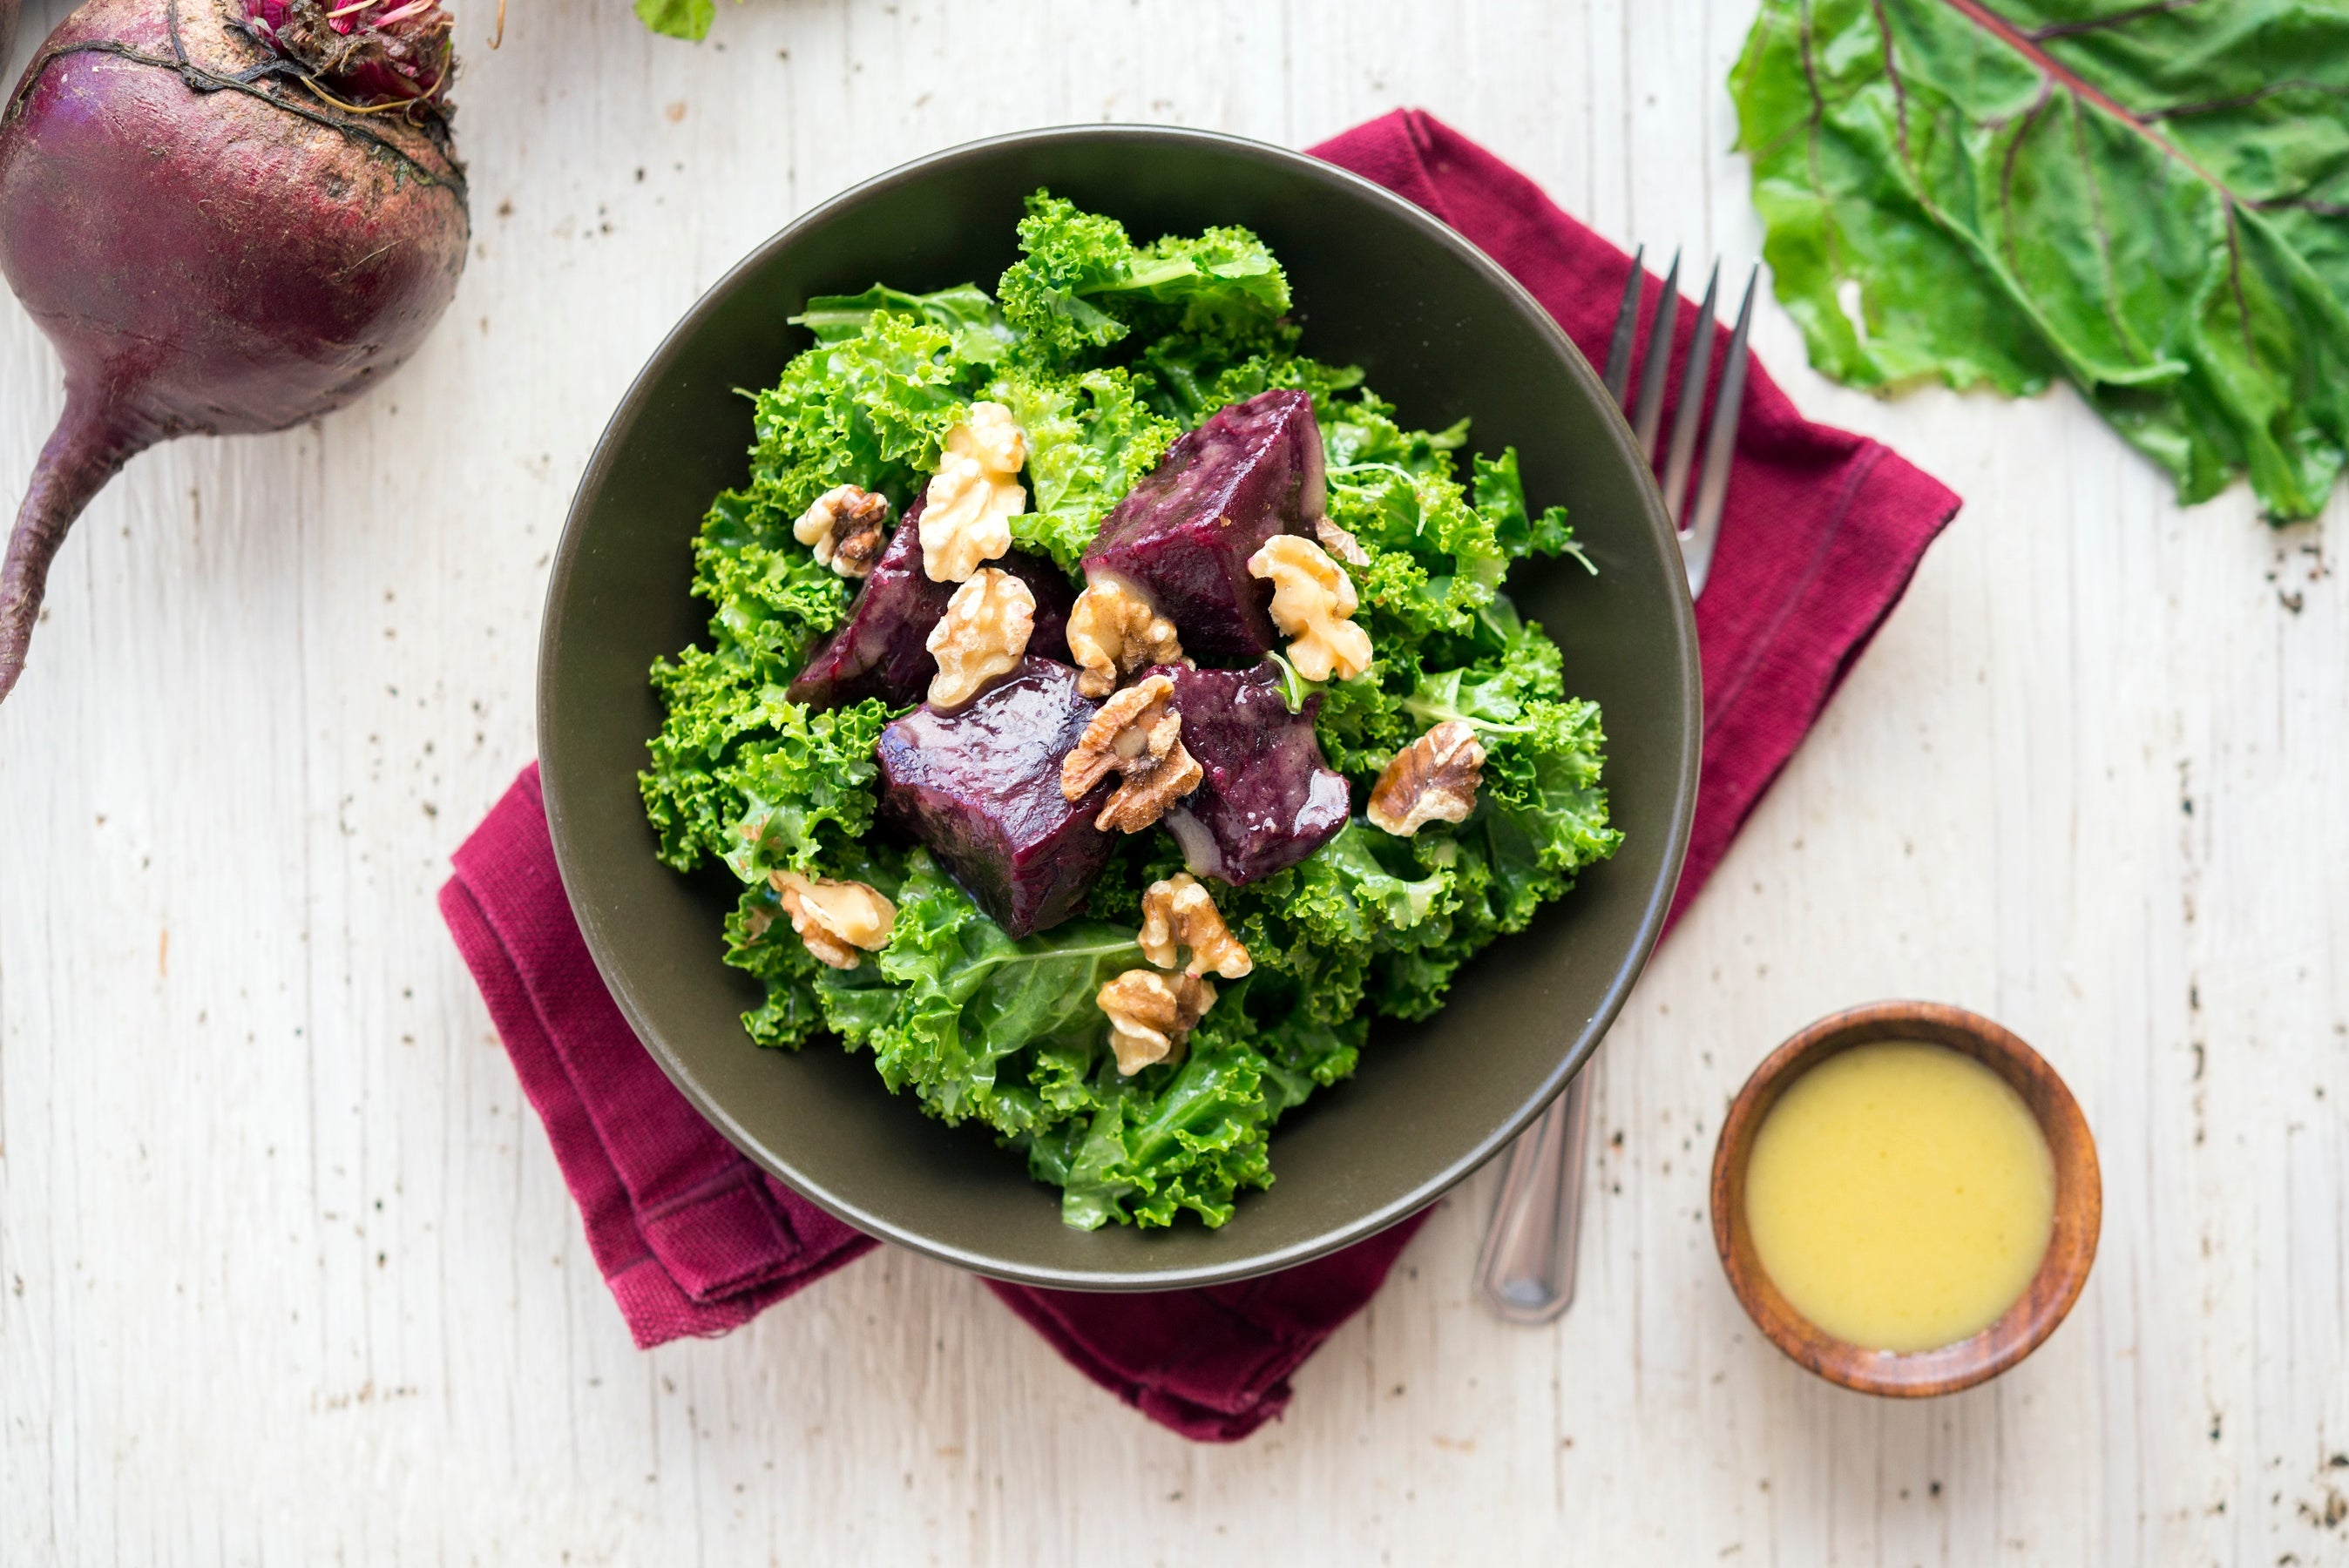 veestro foods beet and kale salad.jpg